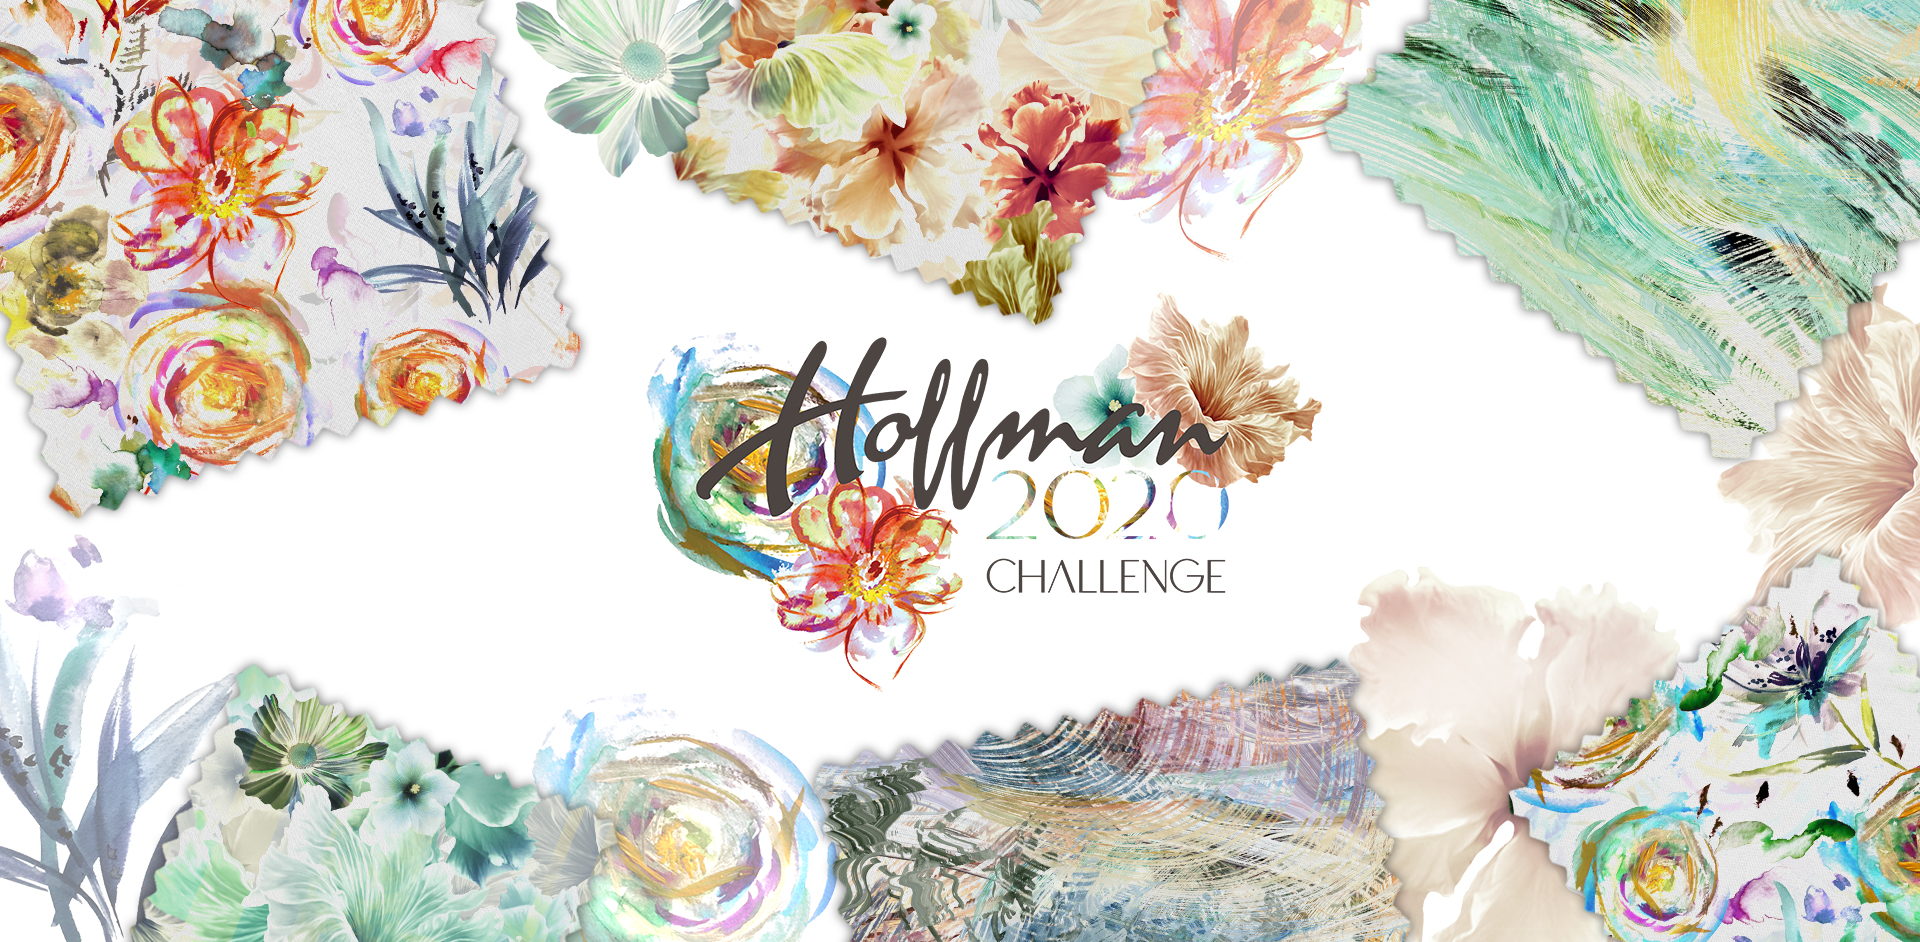 The 2020 Hoffman Challenge Collection